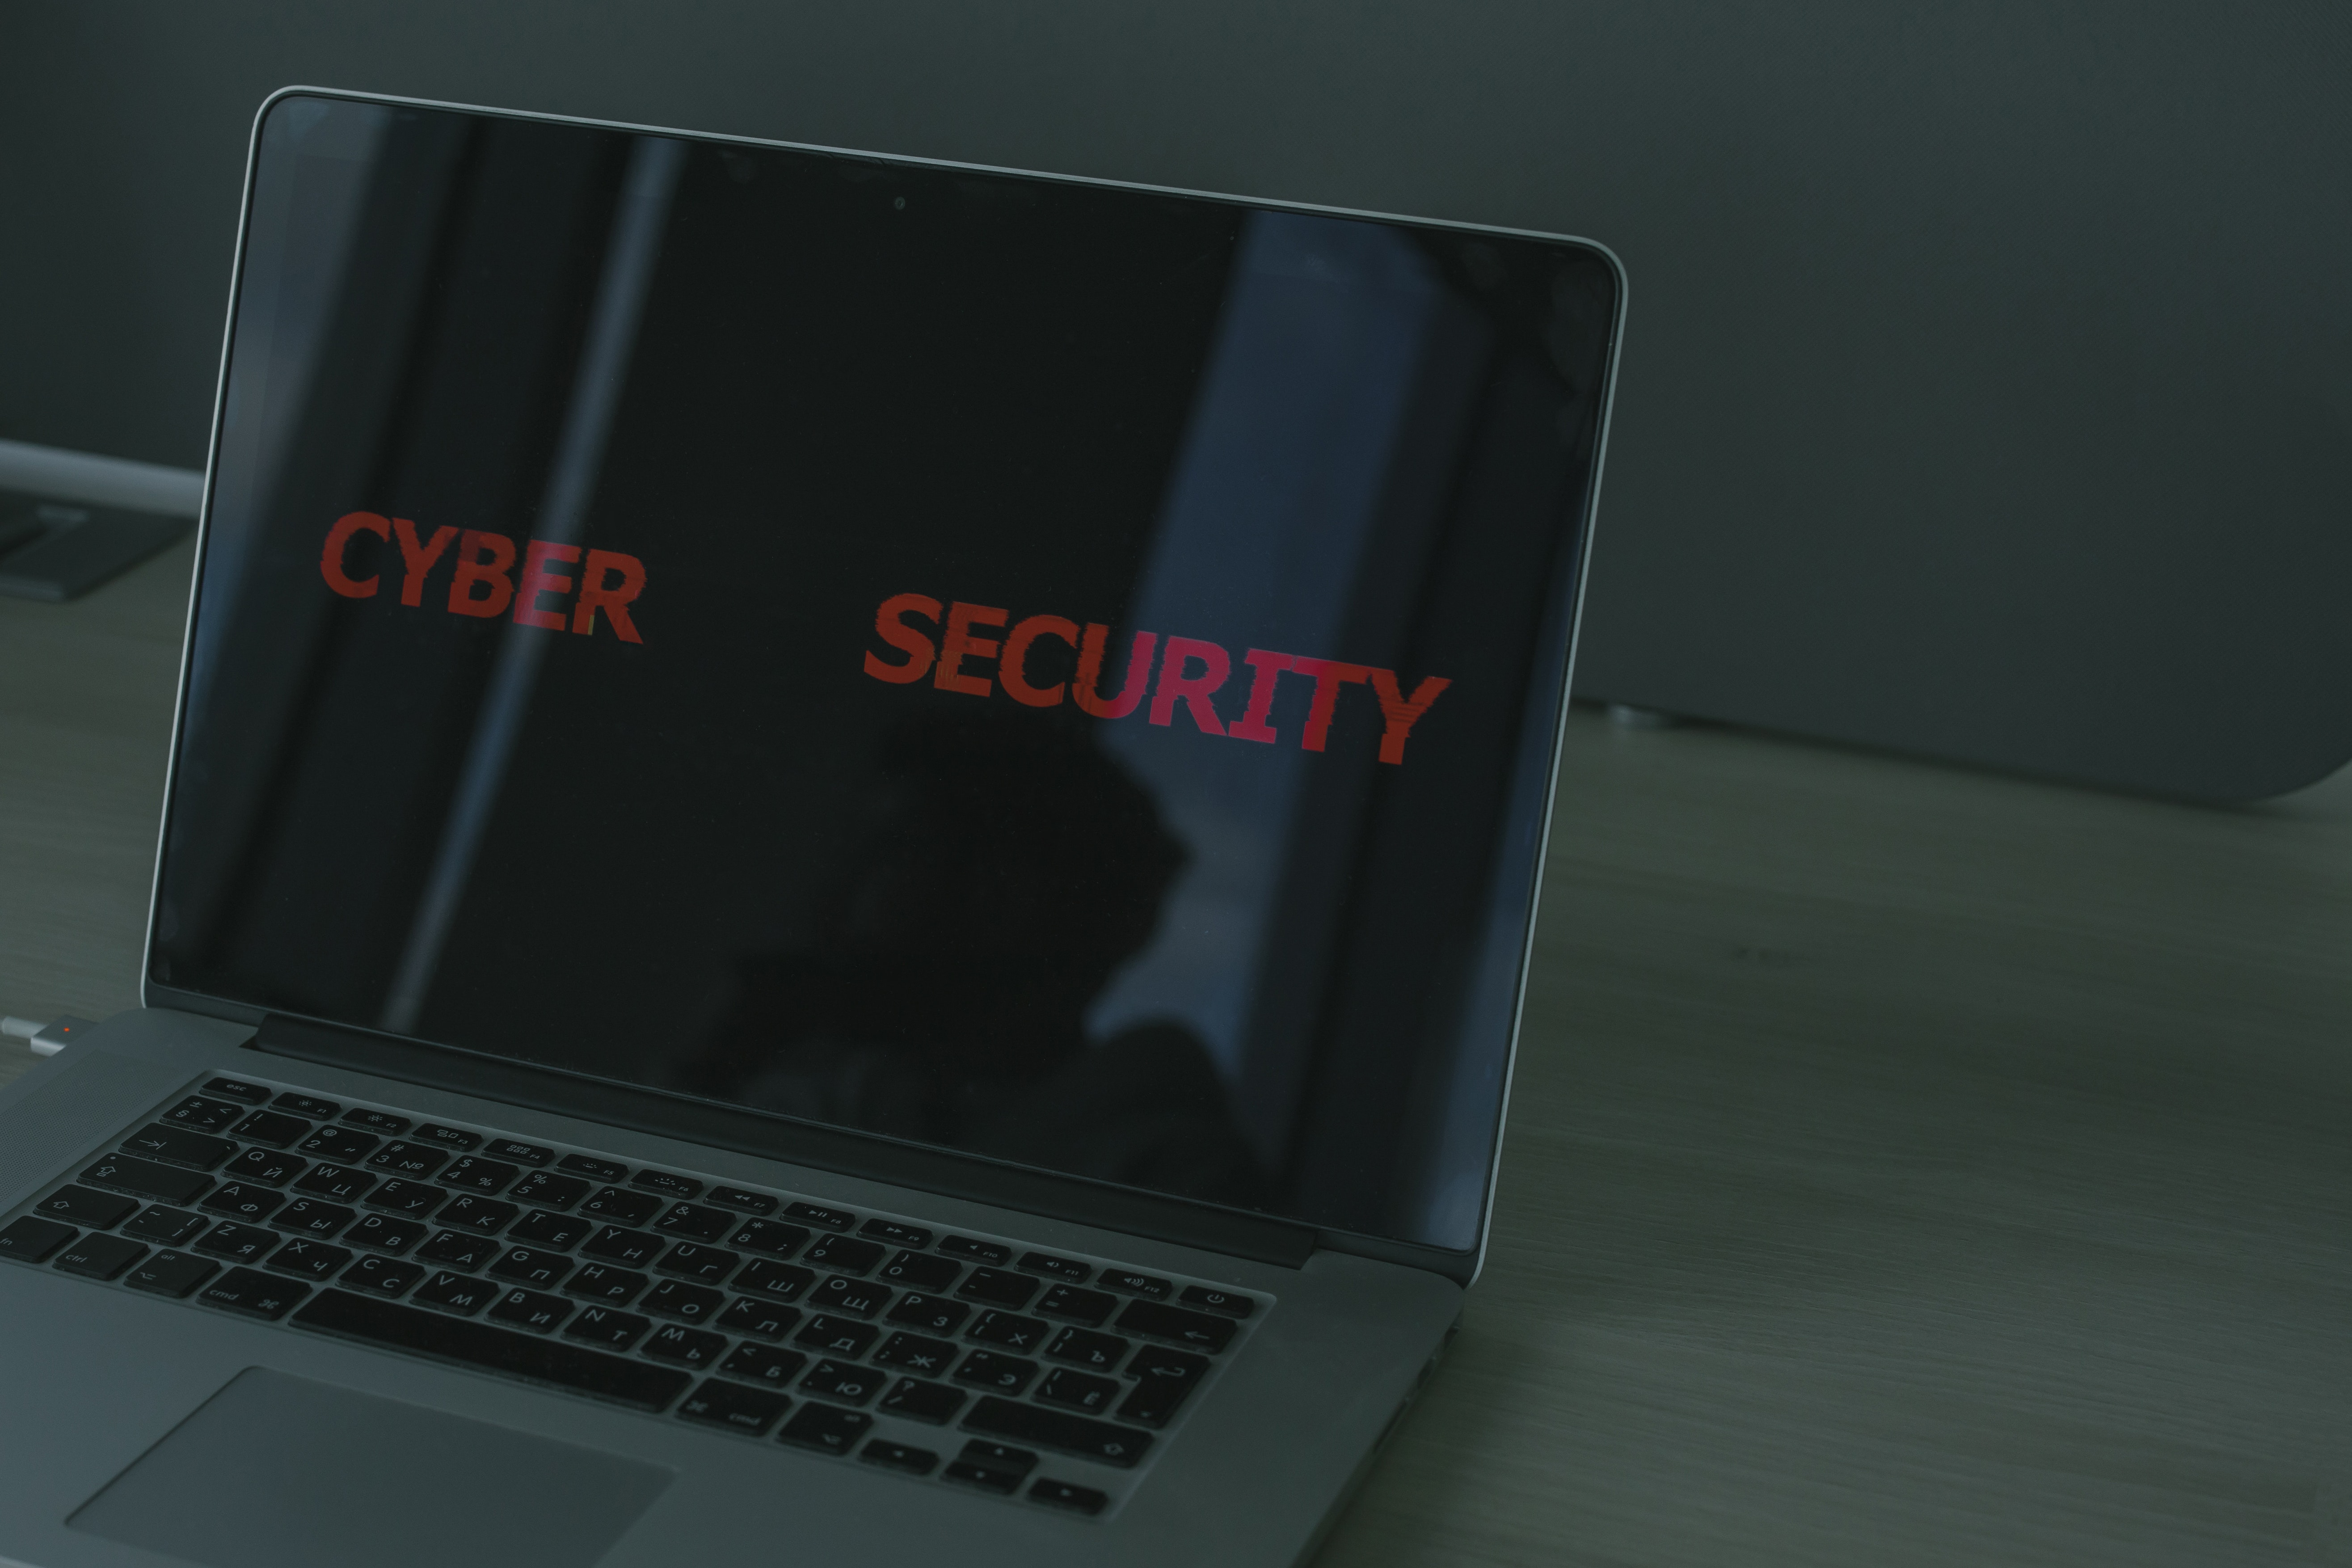 Laptop with the text cybersecurity on the screen